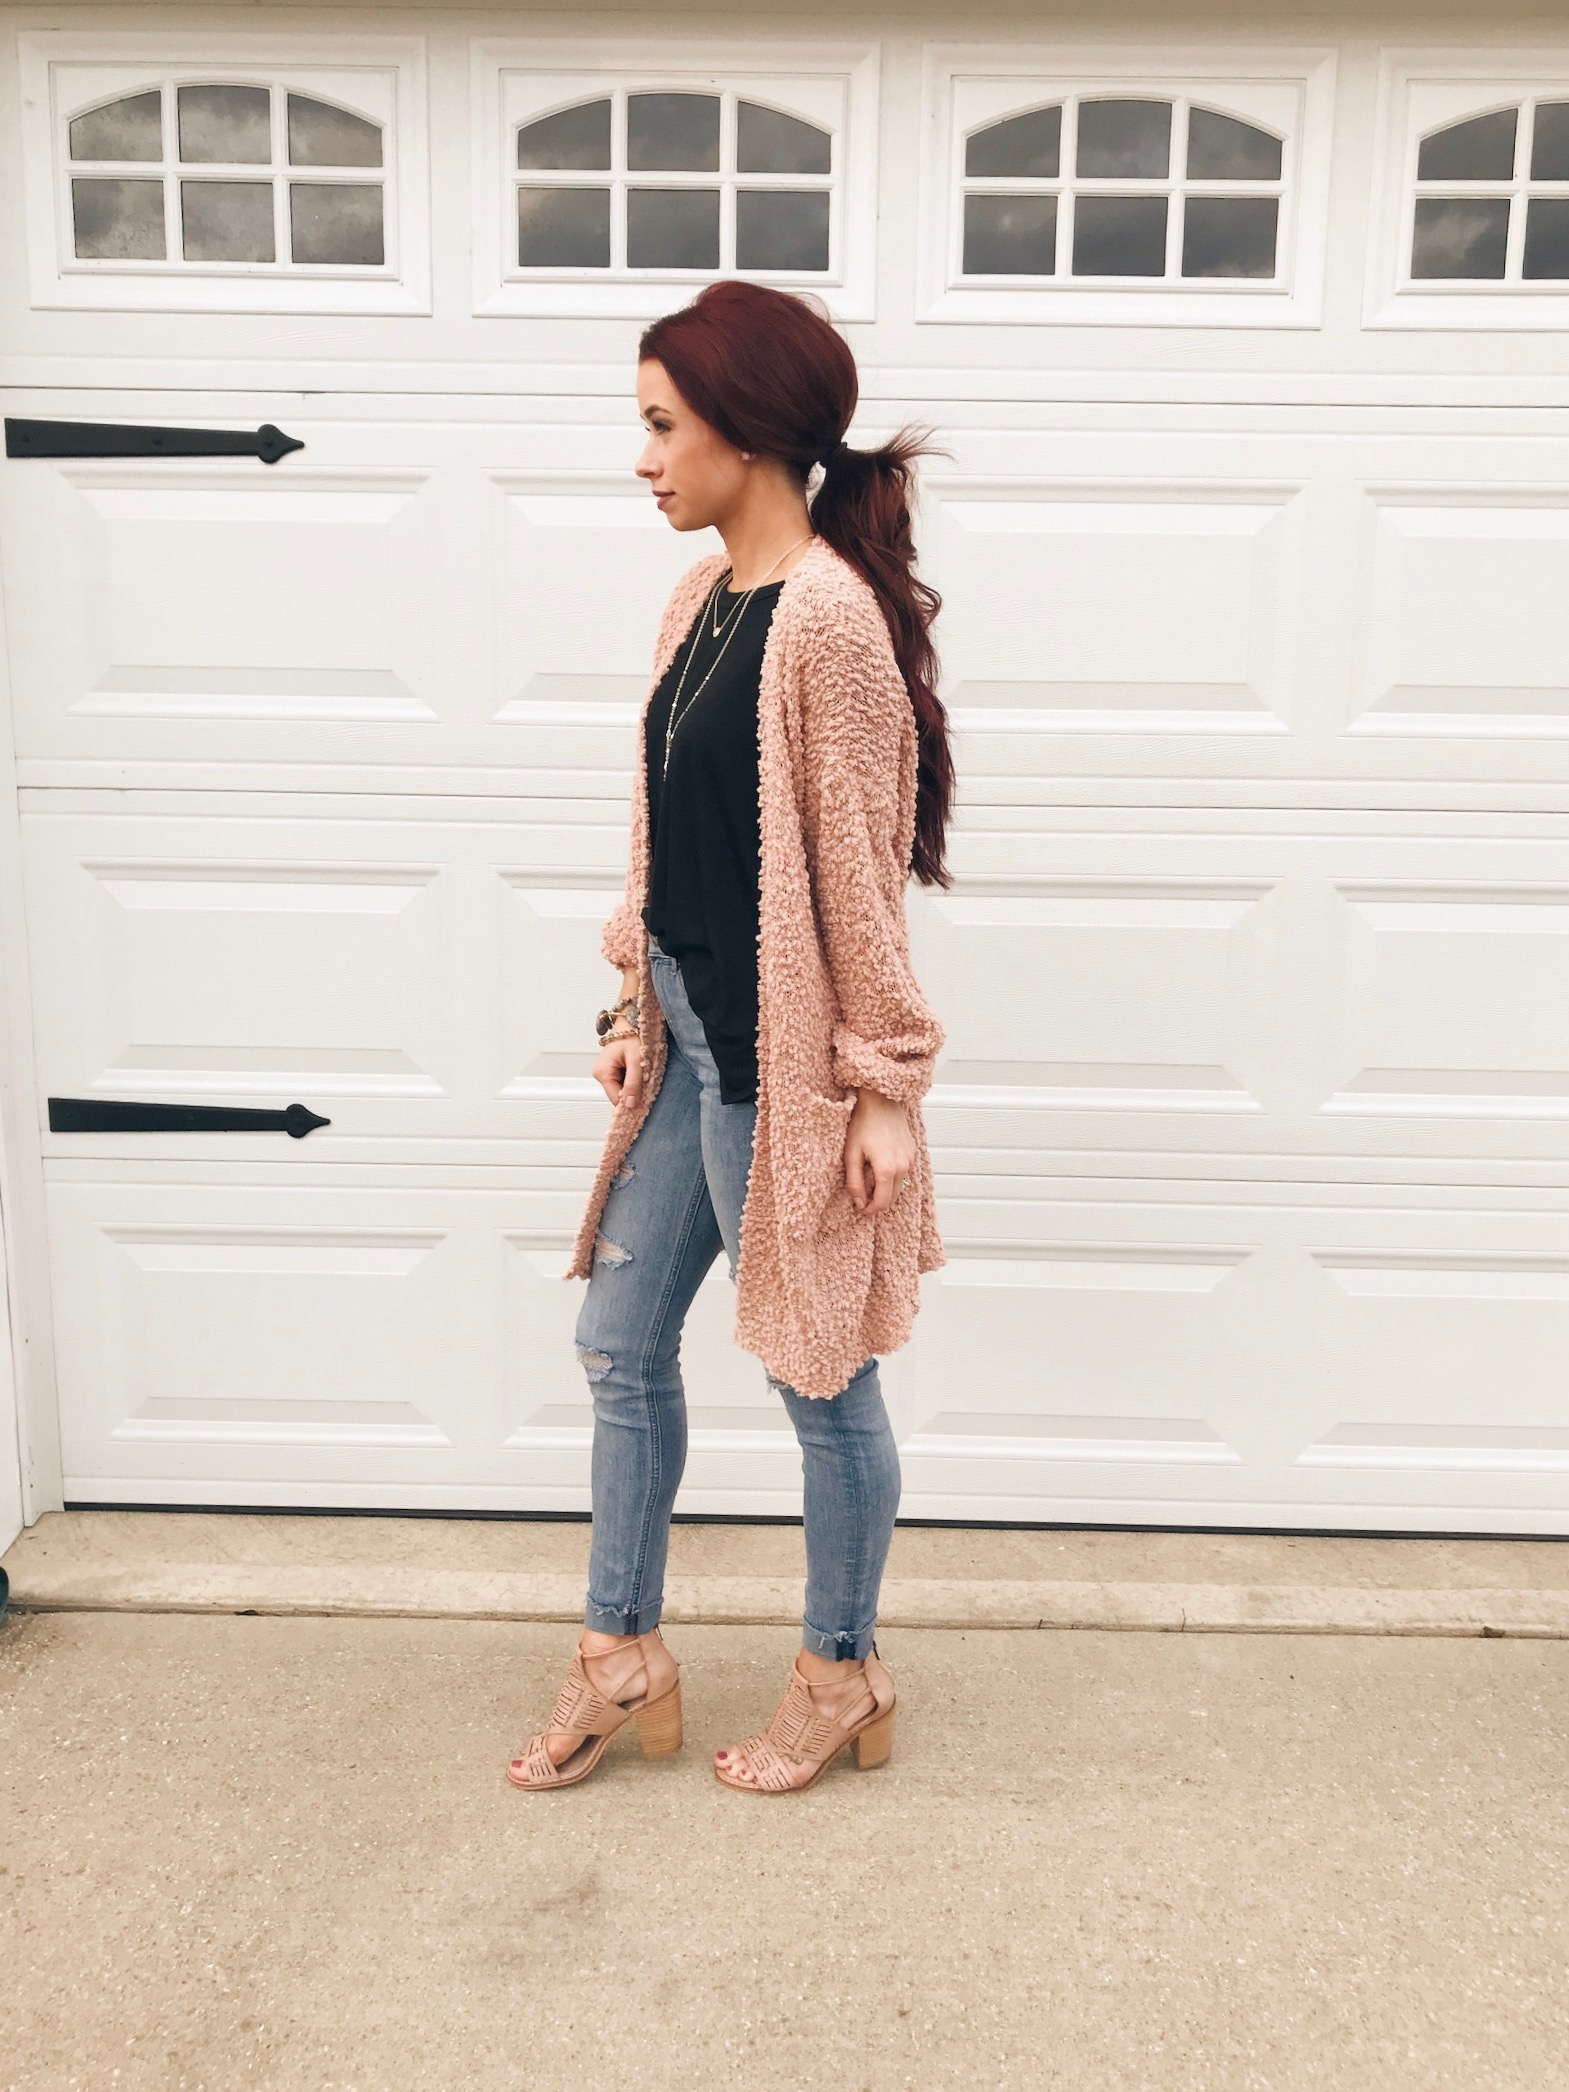 Sweater , Magnolia Boutique ||  Black Top . Magnolia Boutique ||  Blush Heels , Magnolia Boutique ||  Jeans , Express || Use the code TRENDY10 at checkout with Magnolia.